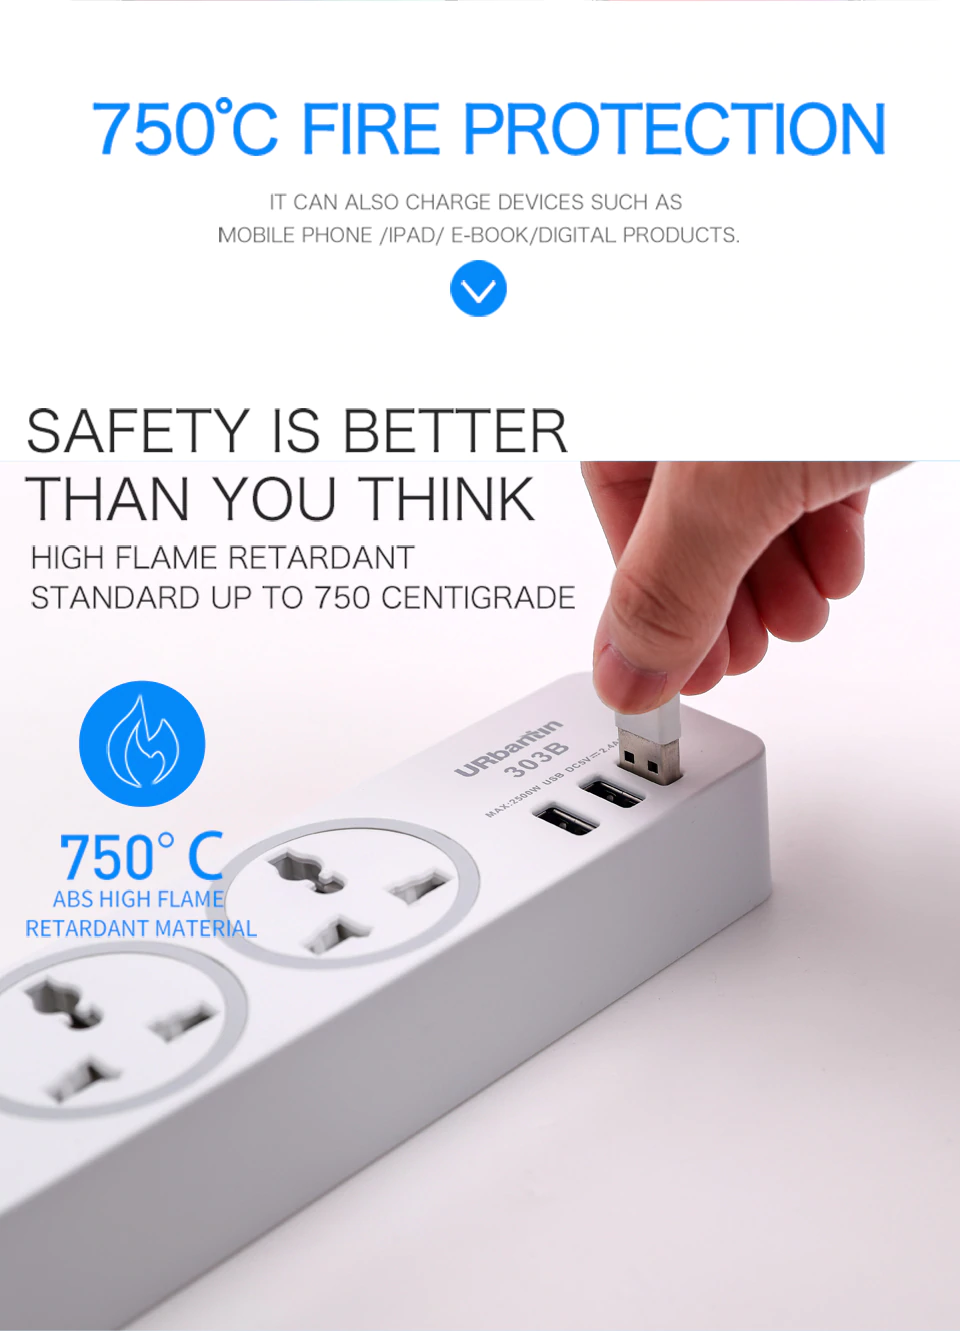 Fire Protection Of Power Strip